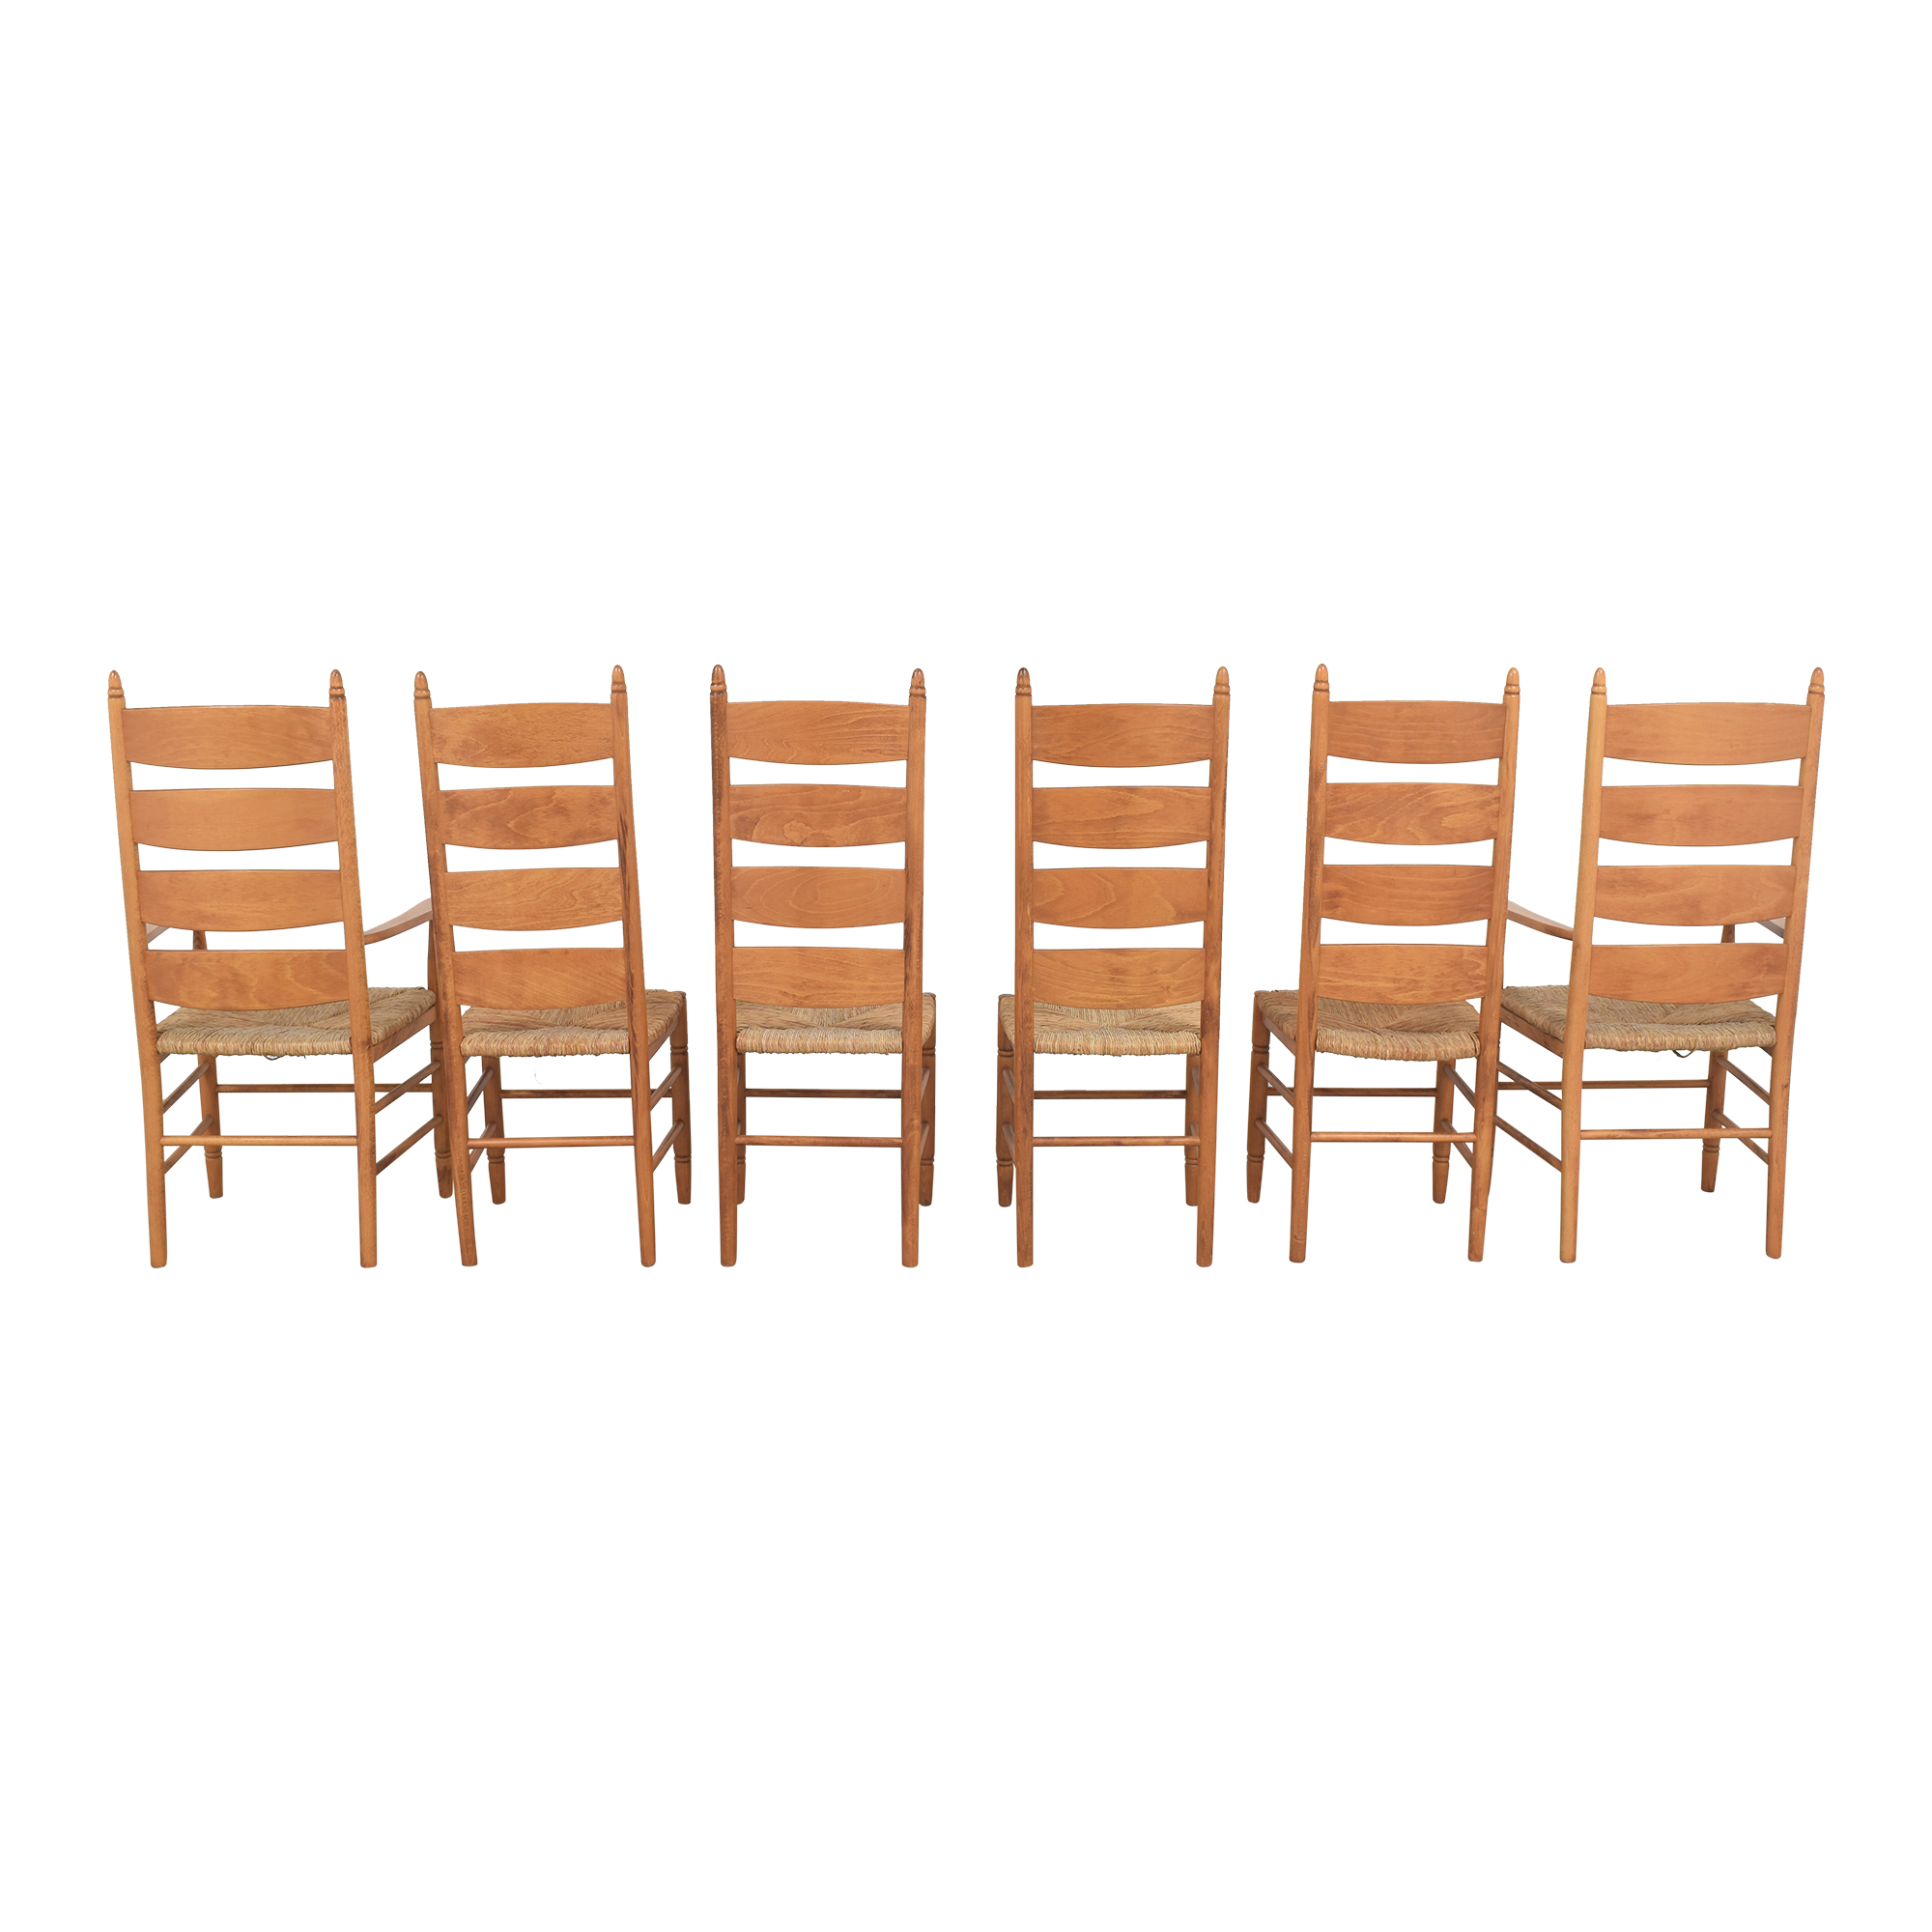 Pottery Barn Pottery Barn Ladder Back Dining Chairs used